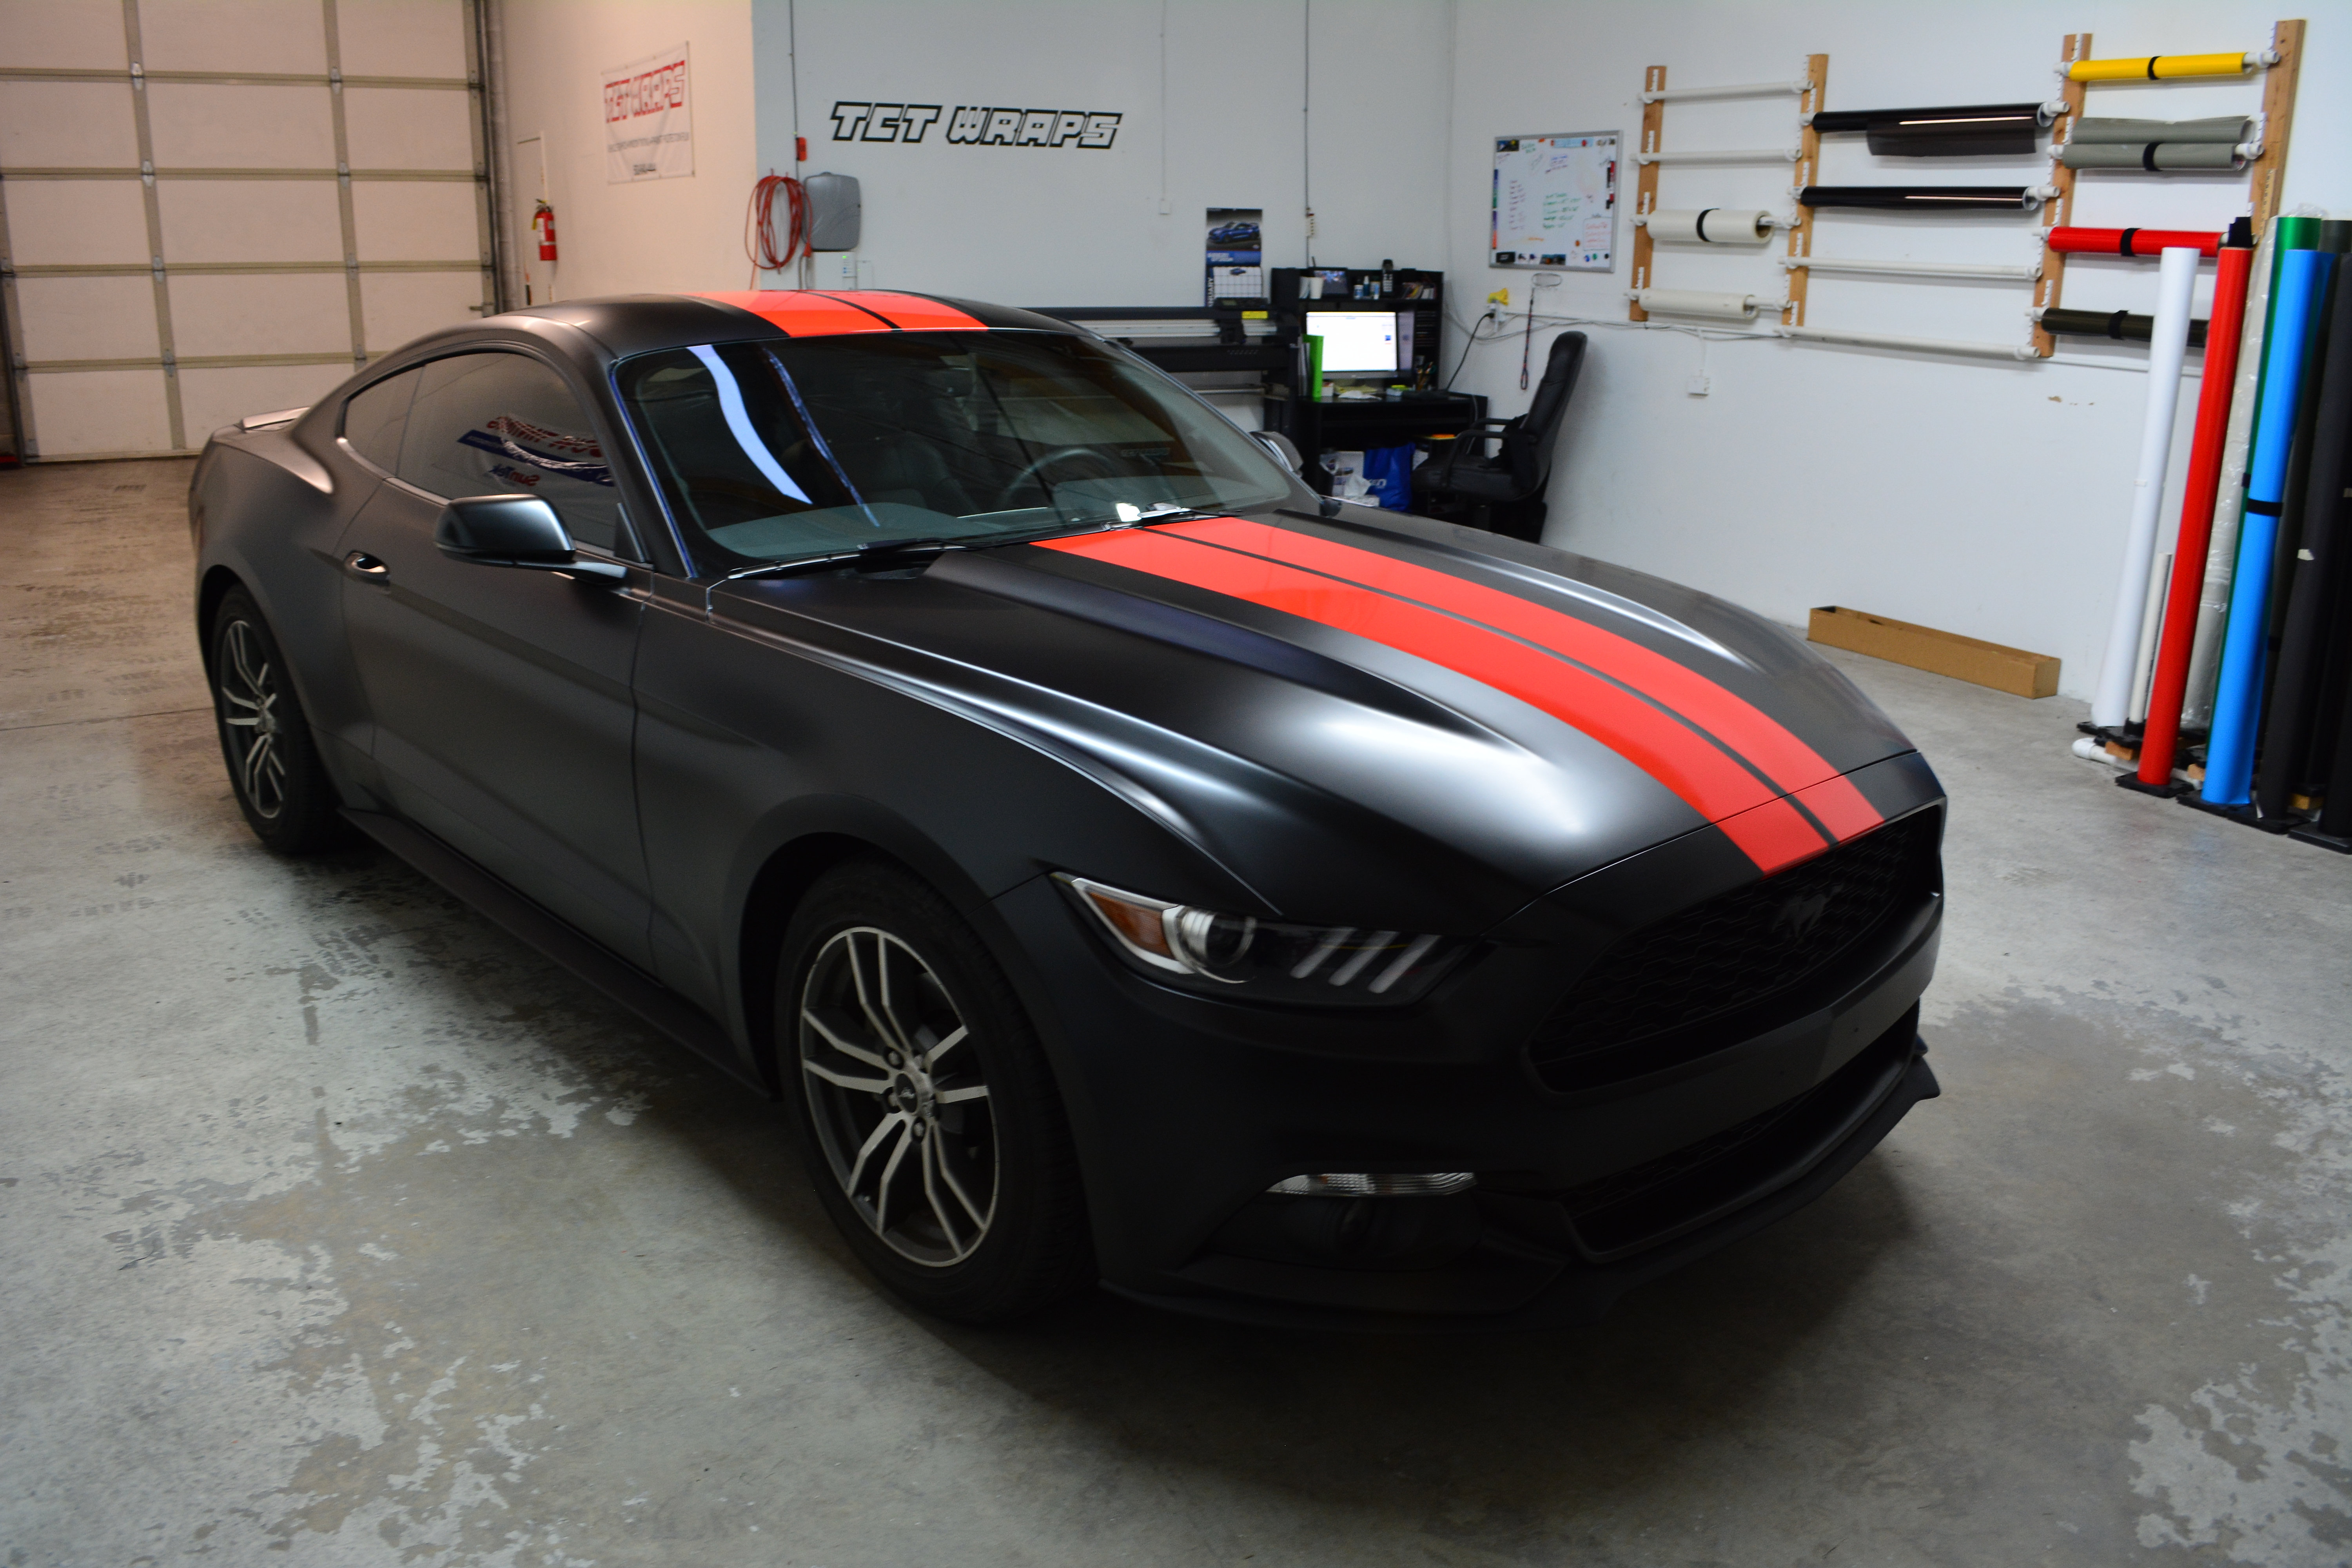 Used Ford Mustang 2015 Near You Carmax >> 2015 Black Mustang | Autos Post